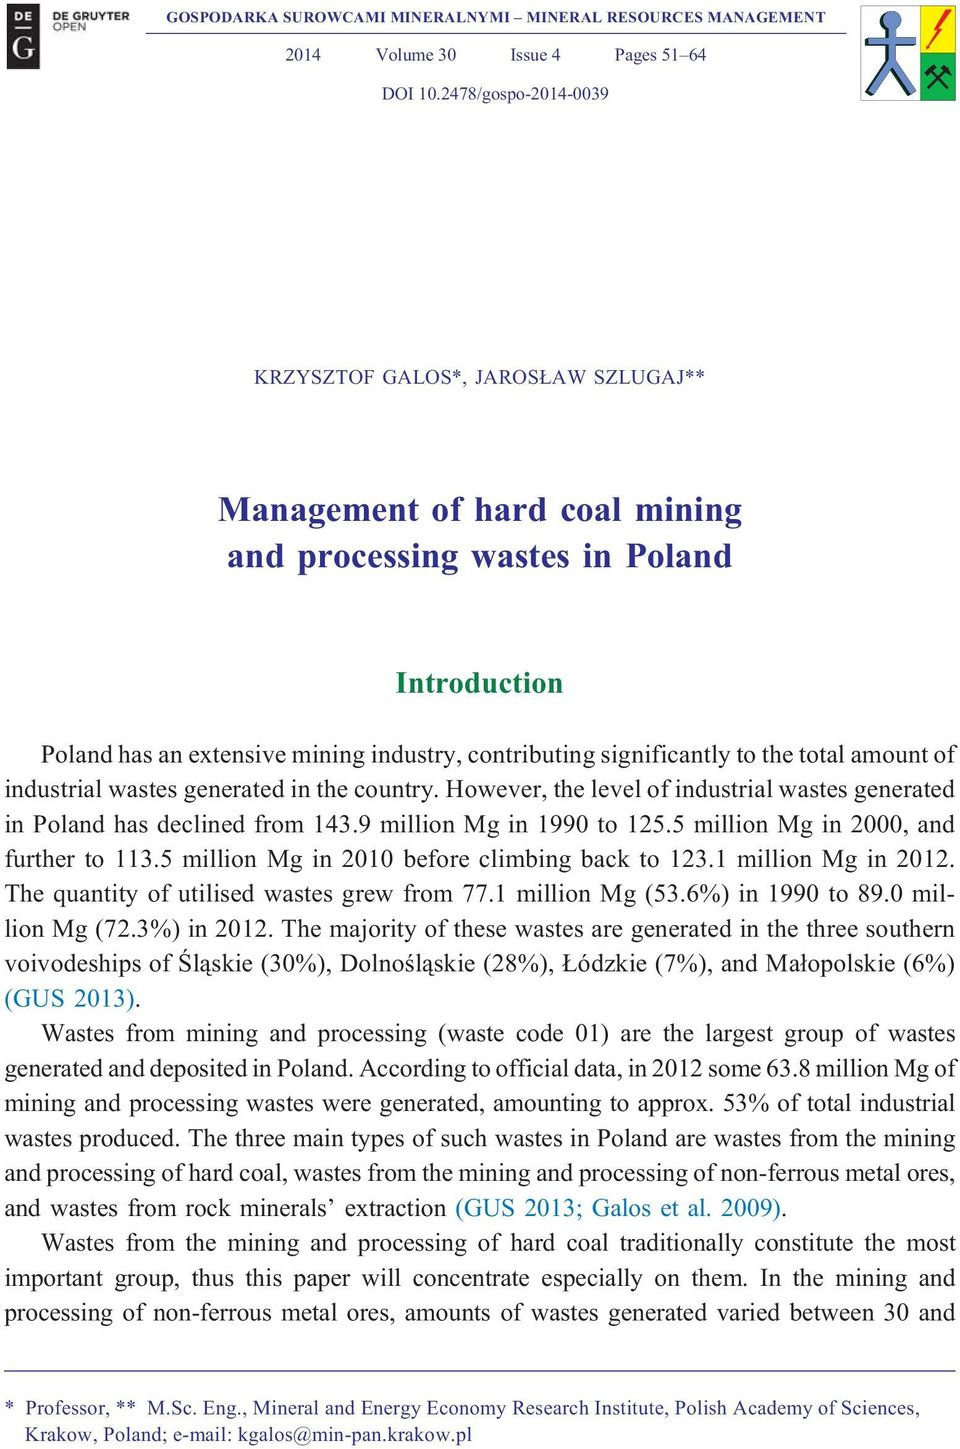 significantly to the total amount of industrial wastes generated in the country. However, the level of industrial wastes generated in Poland has declined from 143.9 million Mg in 1990 to 125.